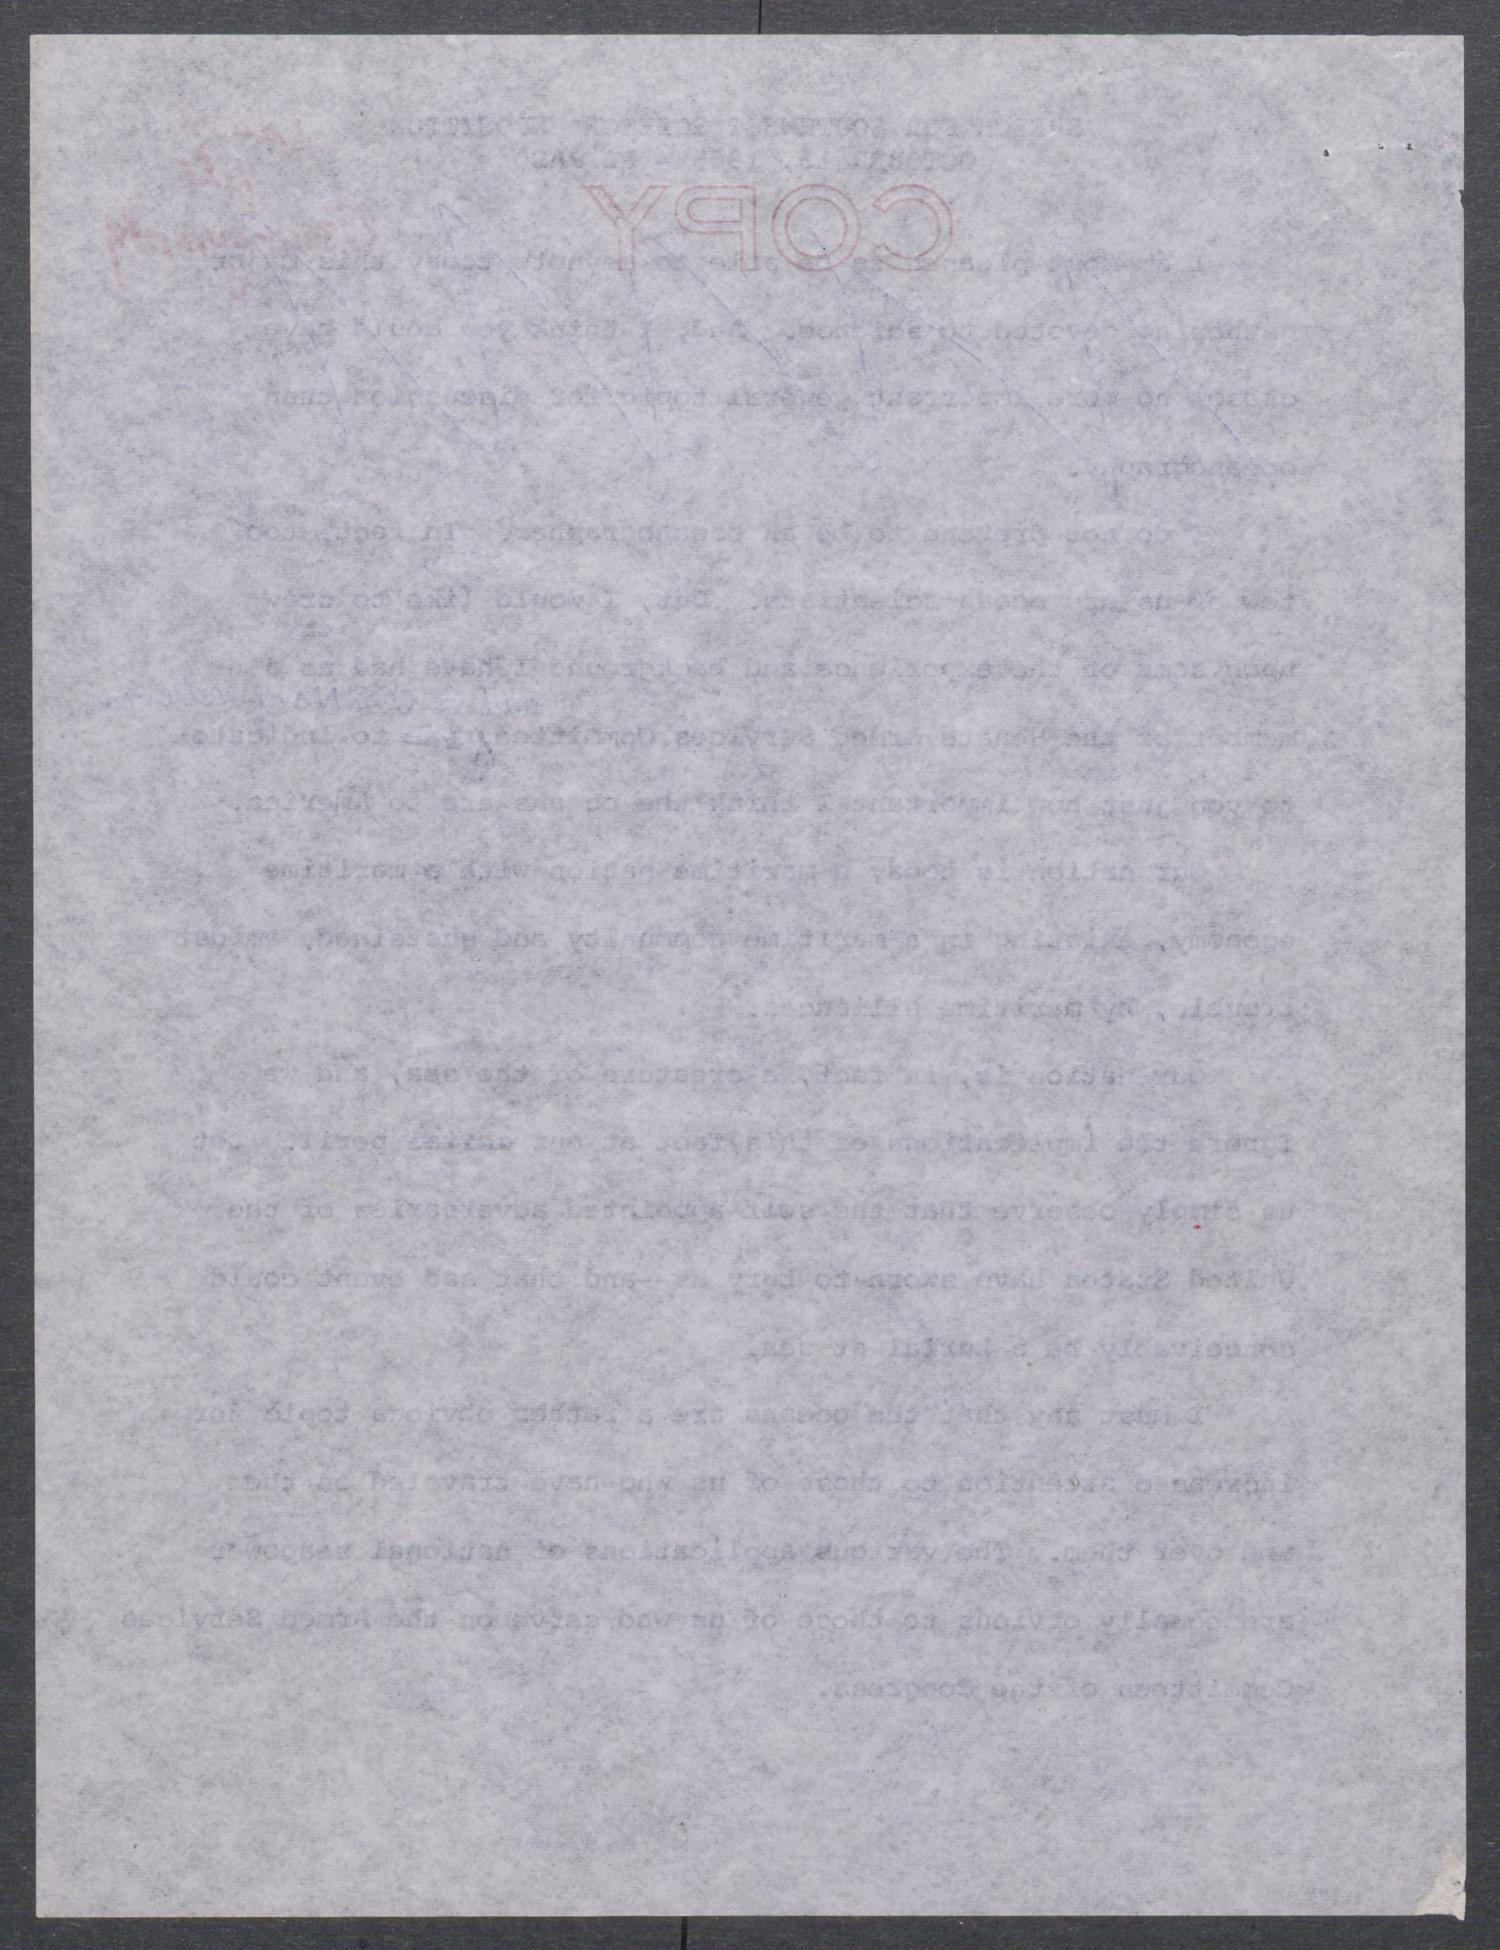 [John Tower Speech on Oceanography given to the Southwest Science Exposition, El Paso, Texas, October 13, 1965]                                                                                                      [Sequence #]: 2 of 18